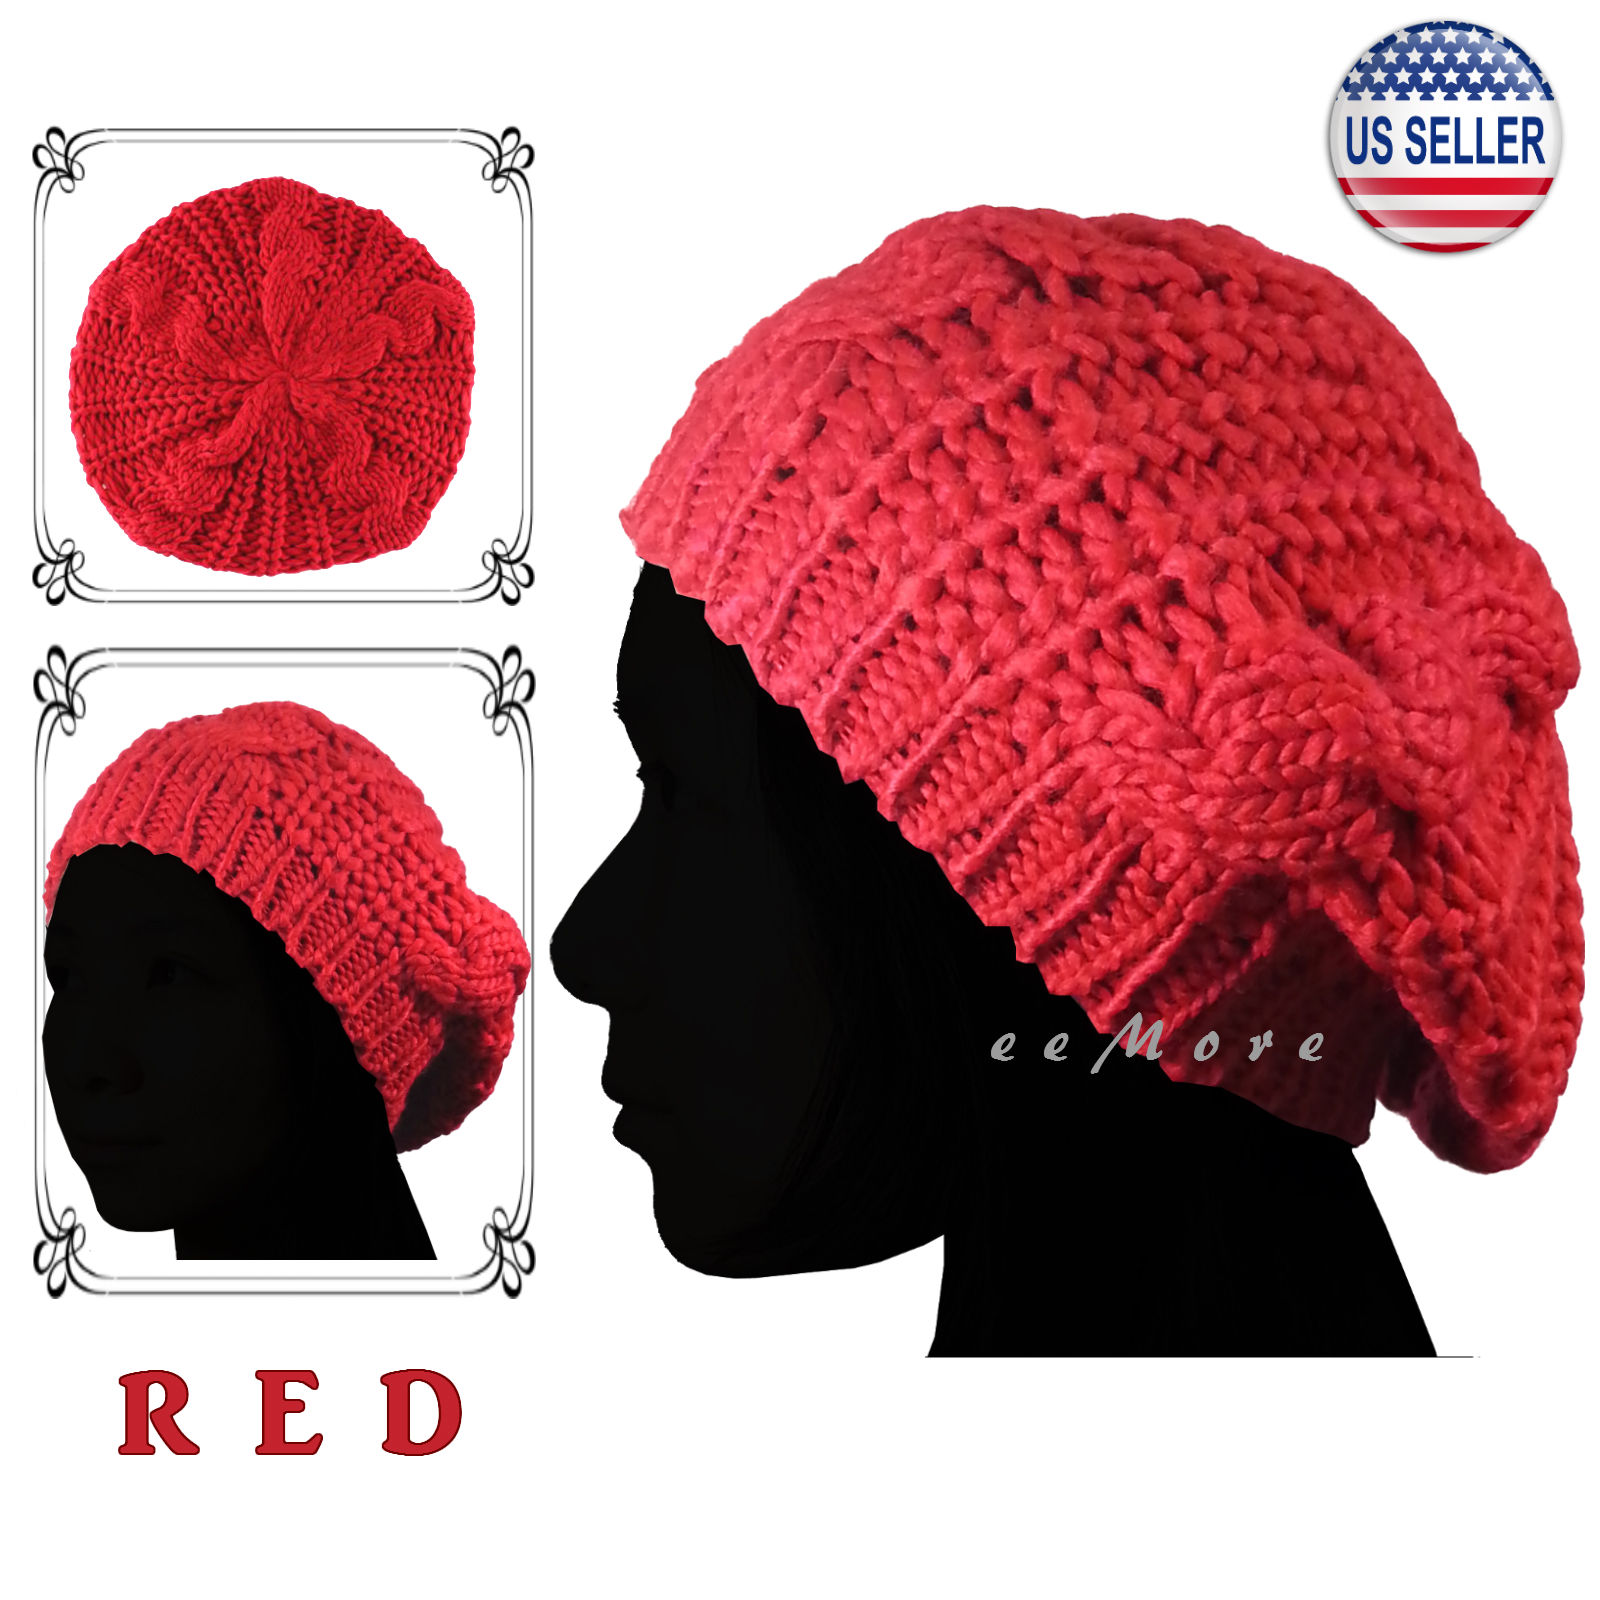 f3a74f93 Details about Knitted Beret Crochet Slouchy Braided Hat Beanie Cap Women  Winter RED US Stock